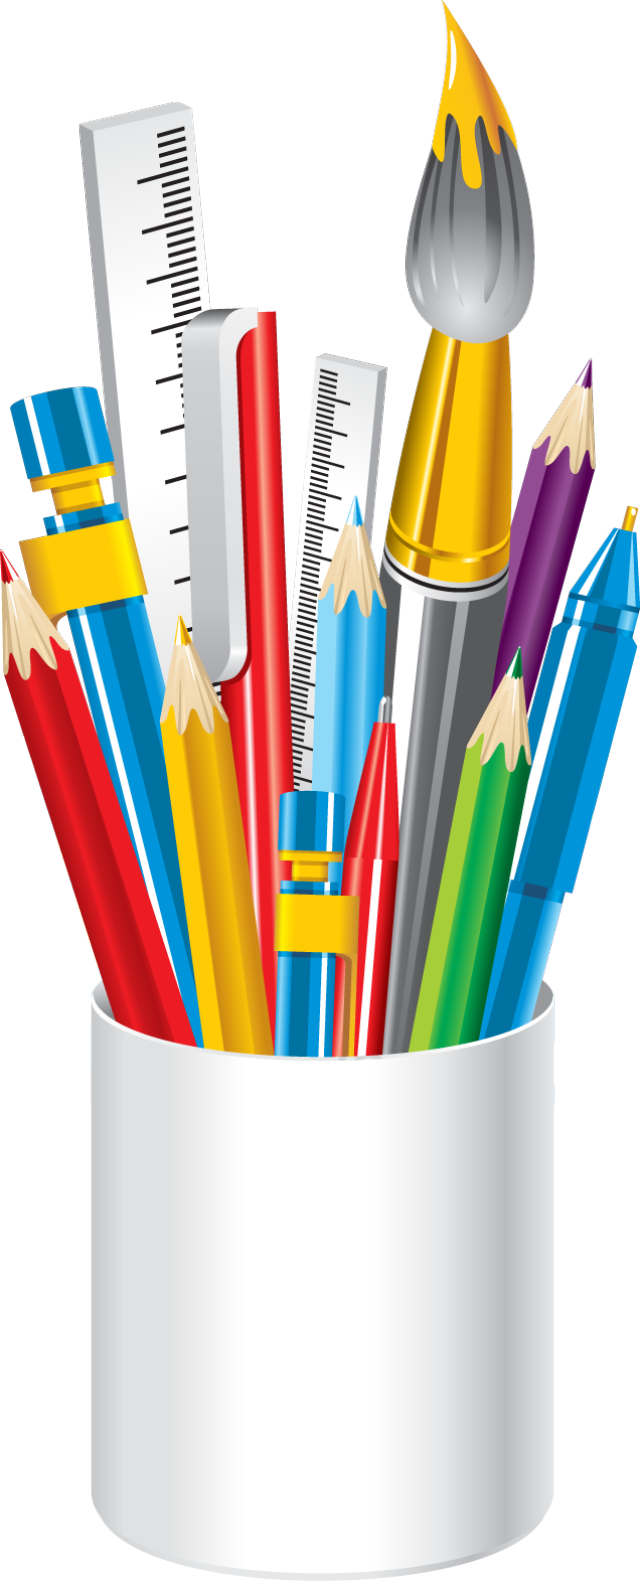 School supplies clipart png 7 clipart station school supplies clipart png 7 voltagebd Image collections